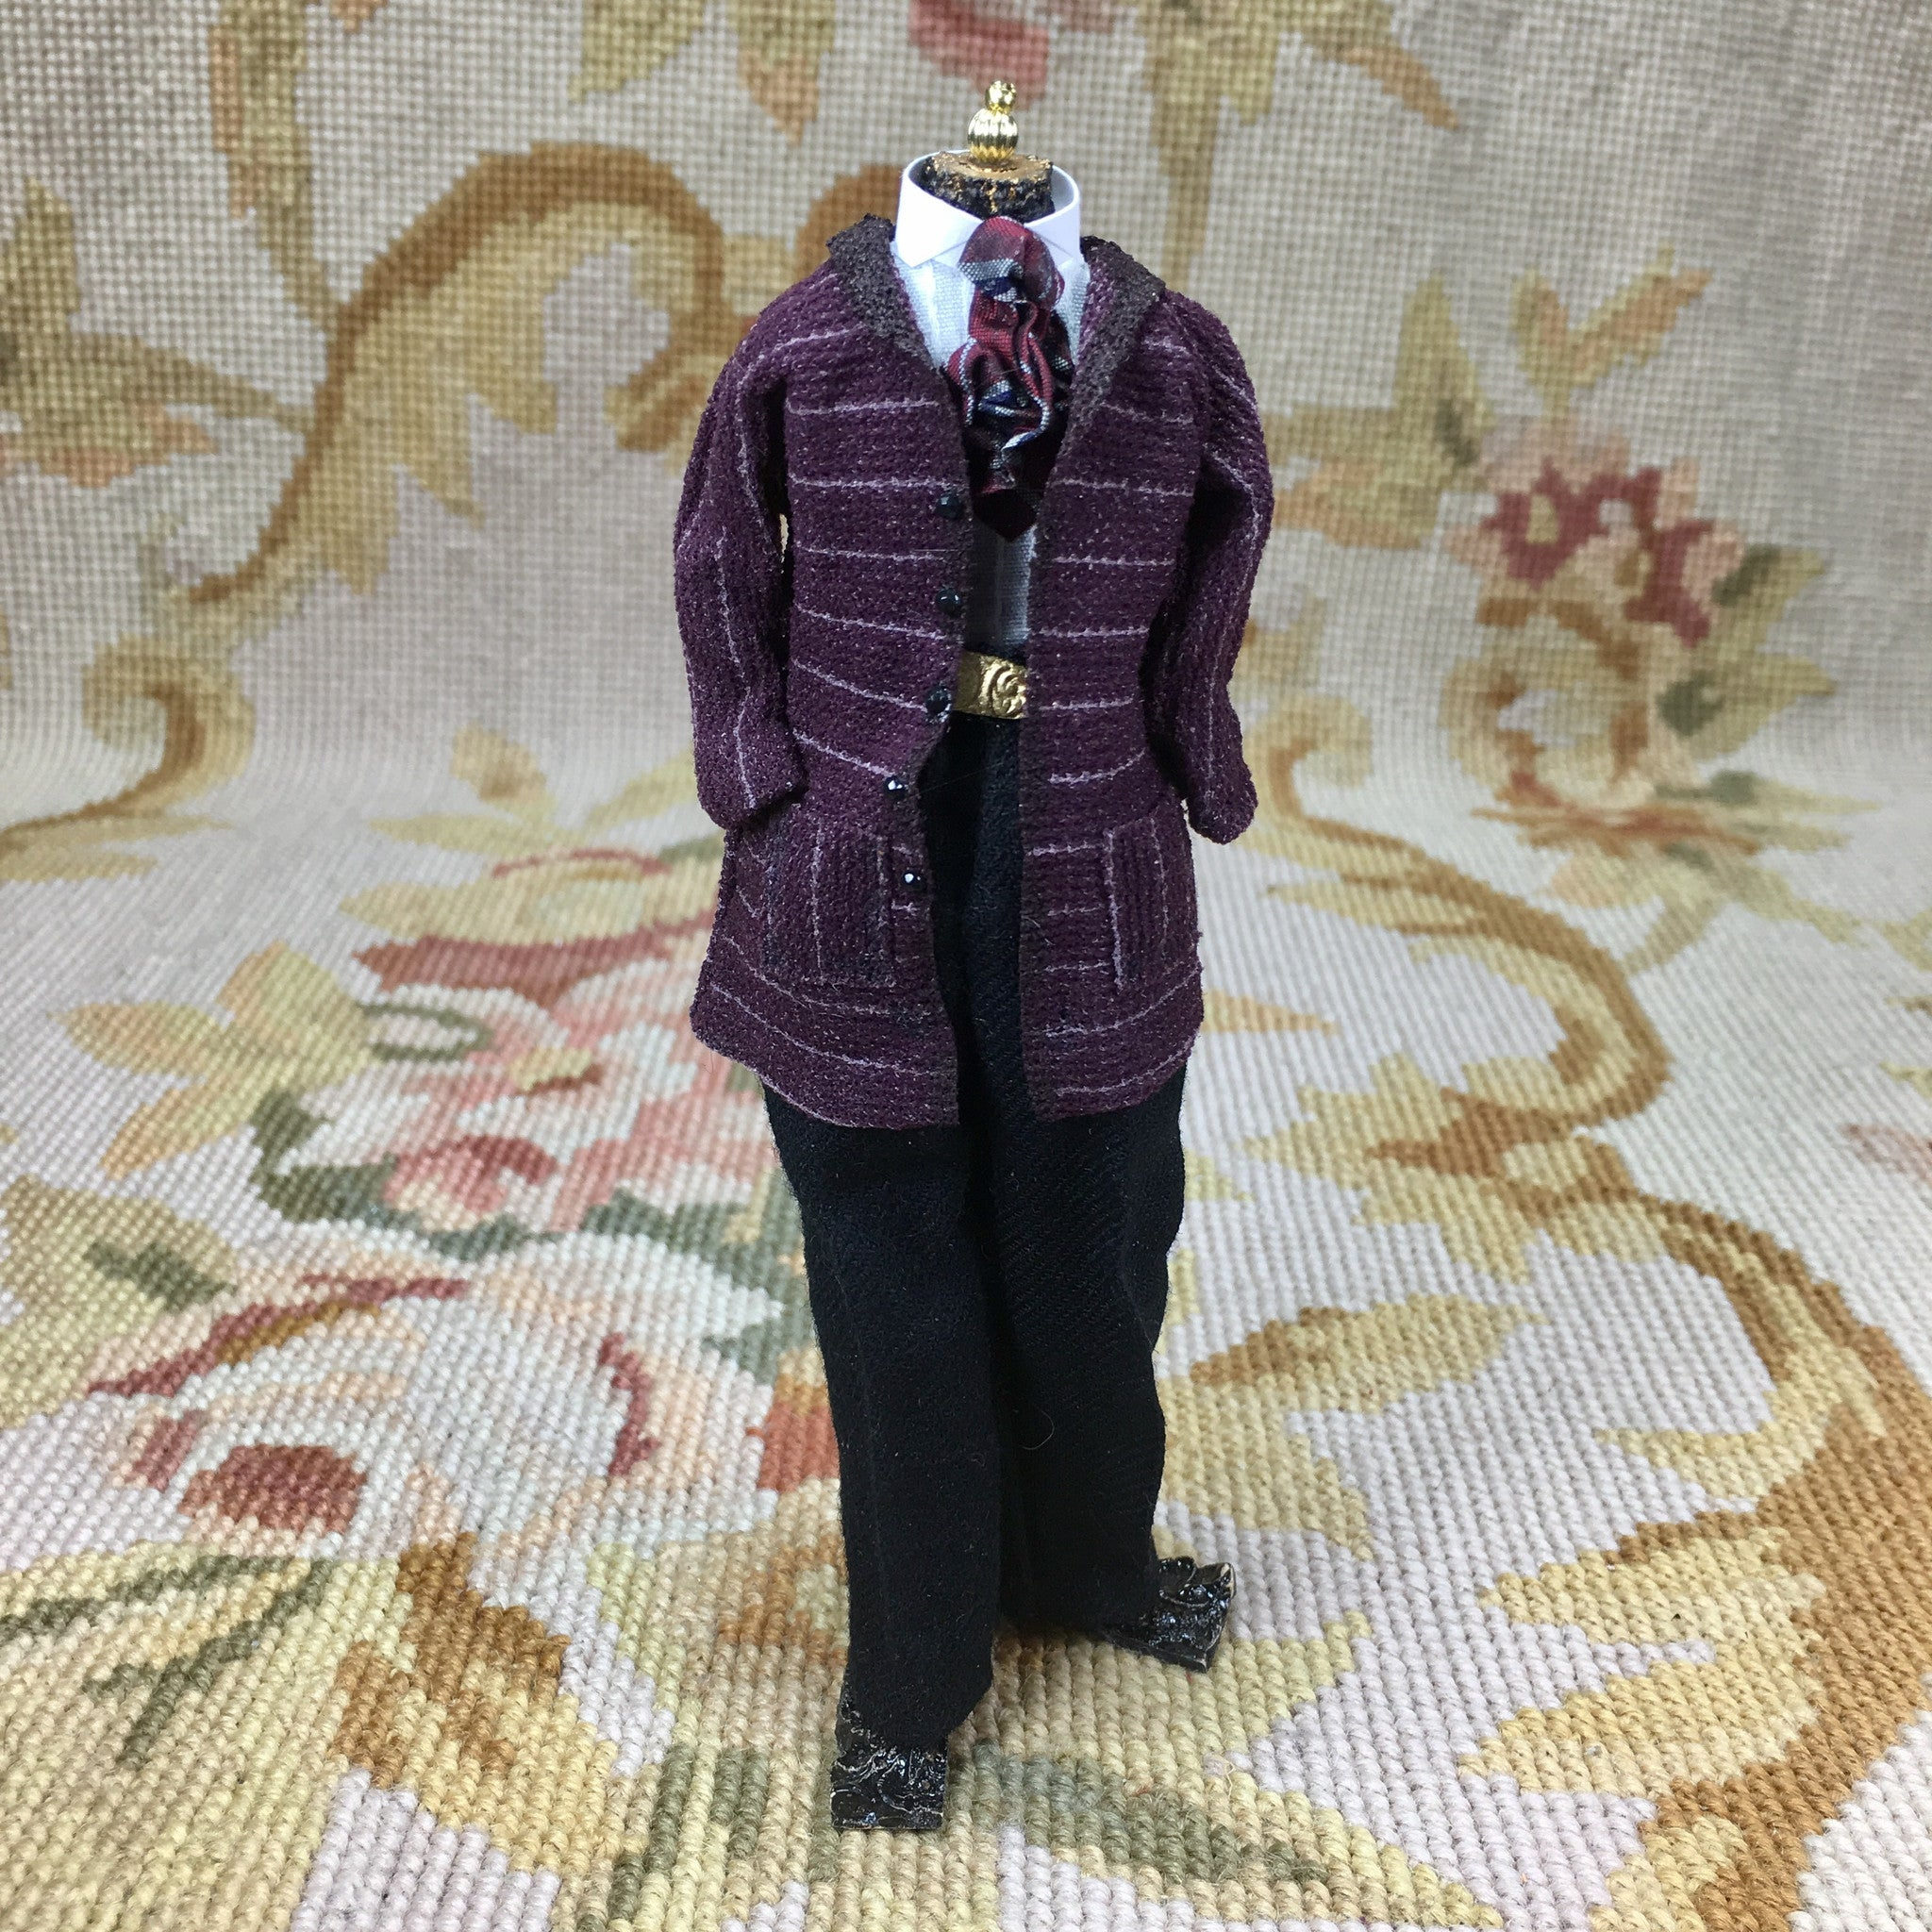 Dress Form Mannequin Male Figure 1:12 Dollhouse Miniature Clothing